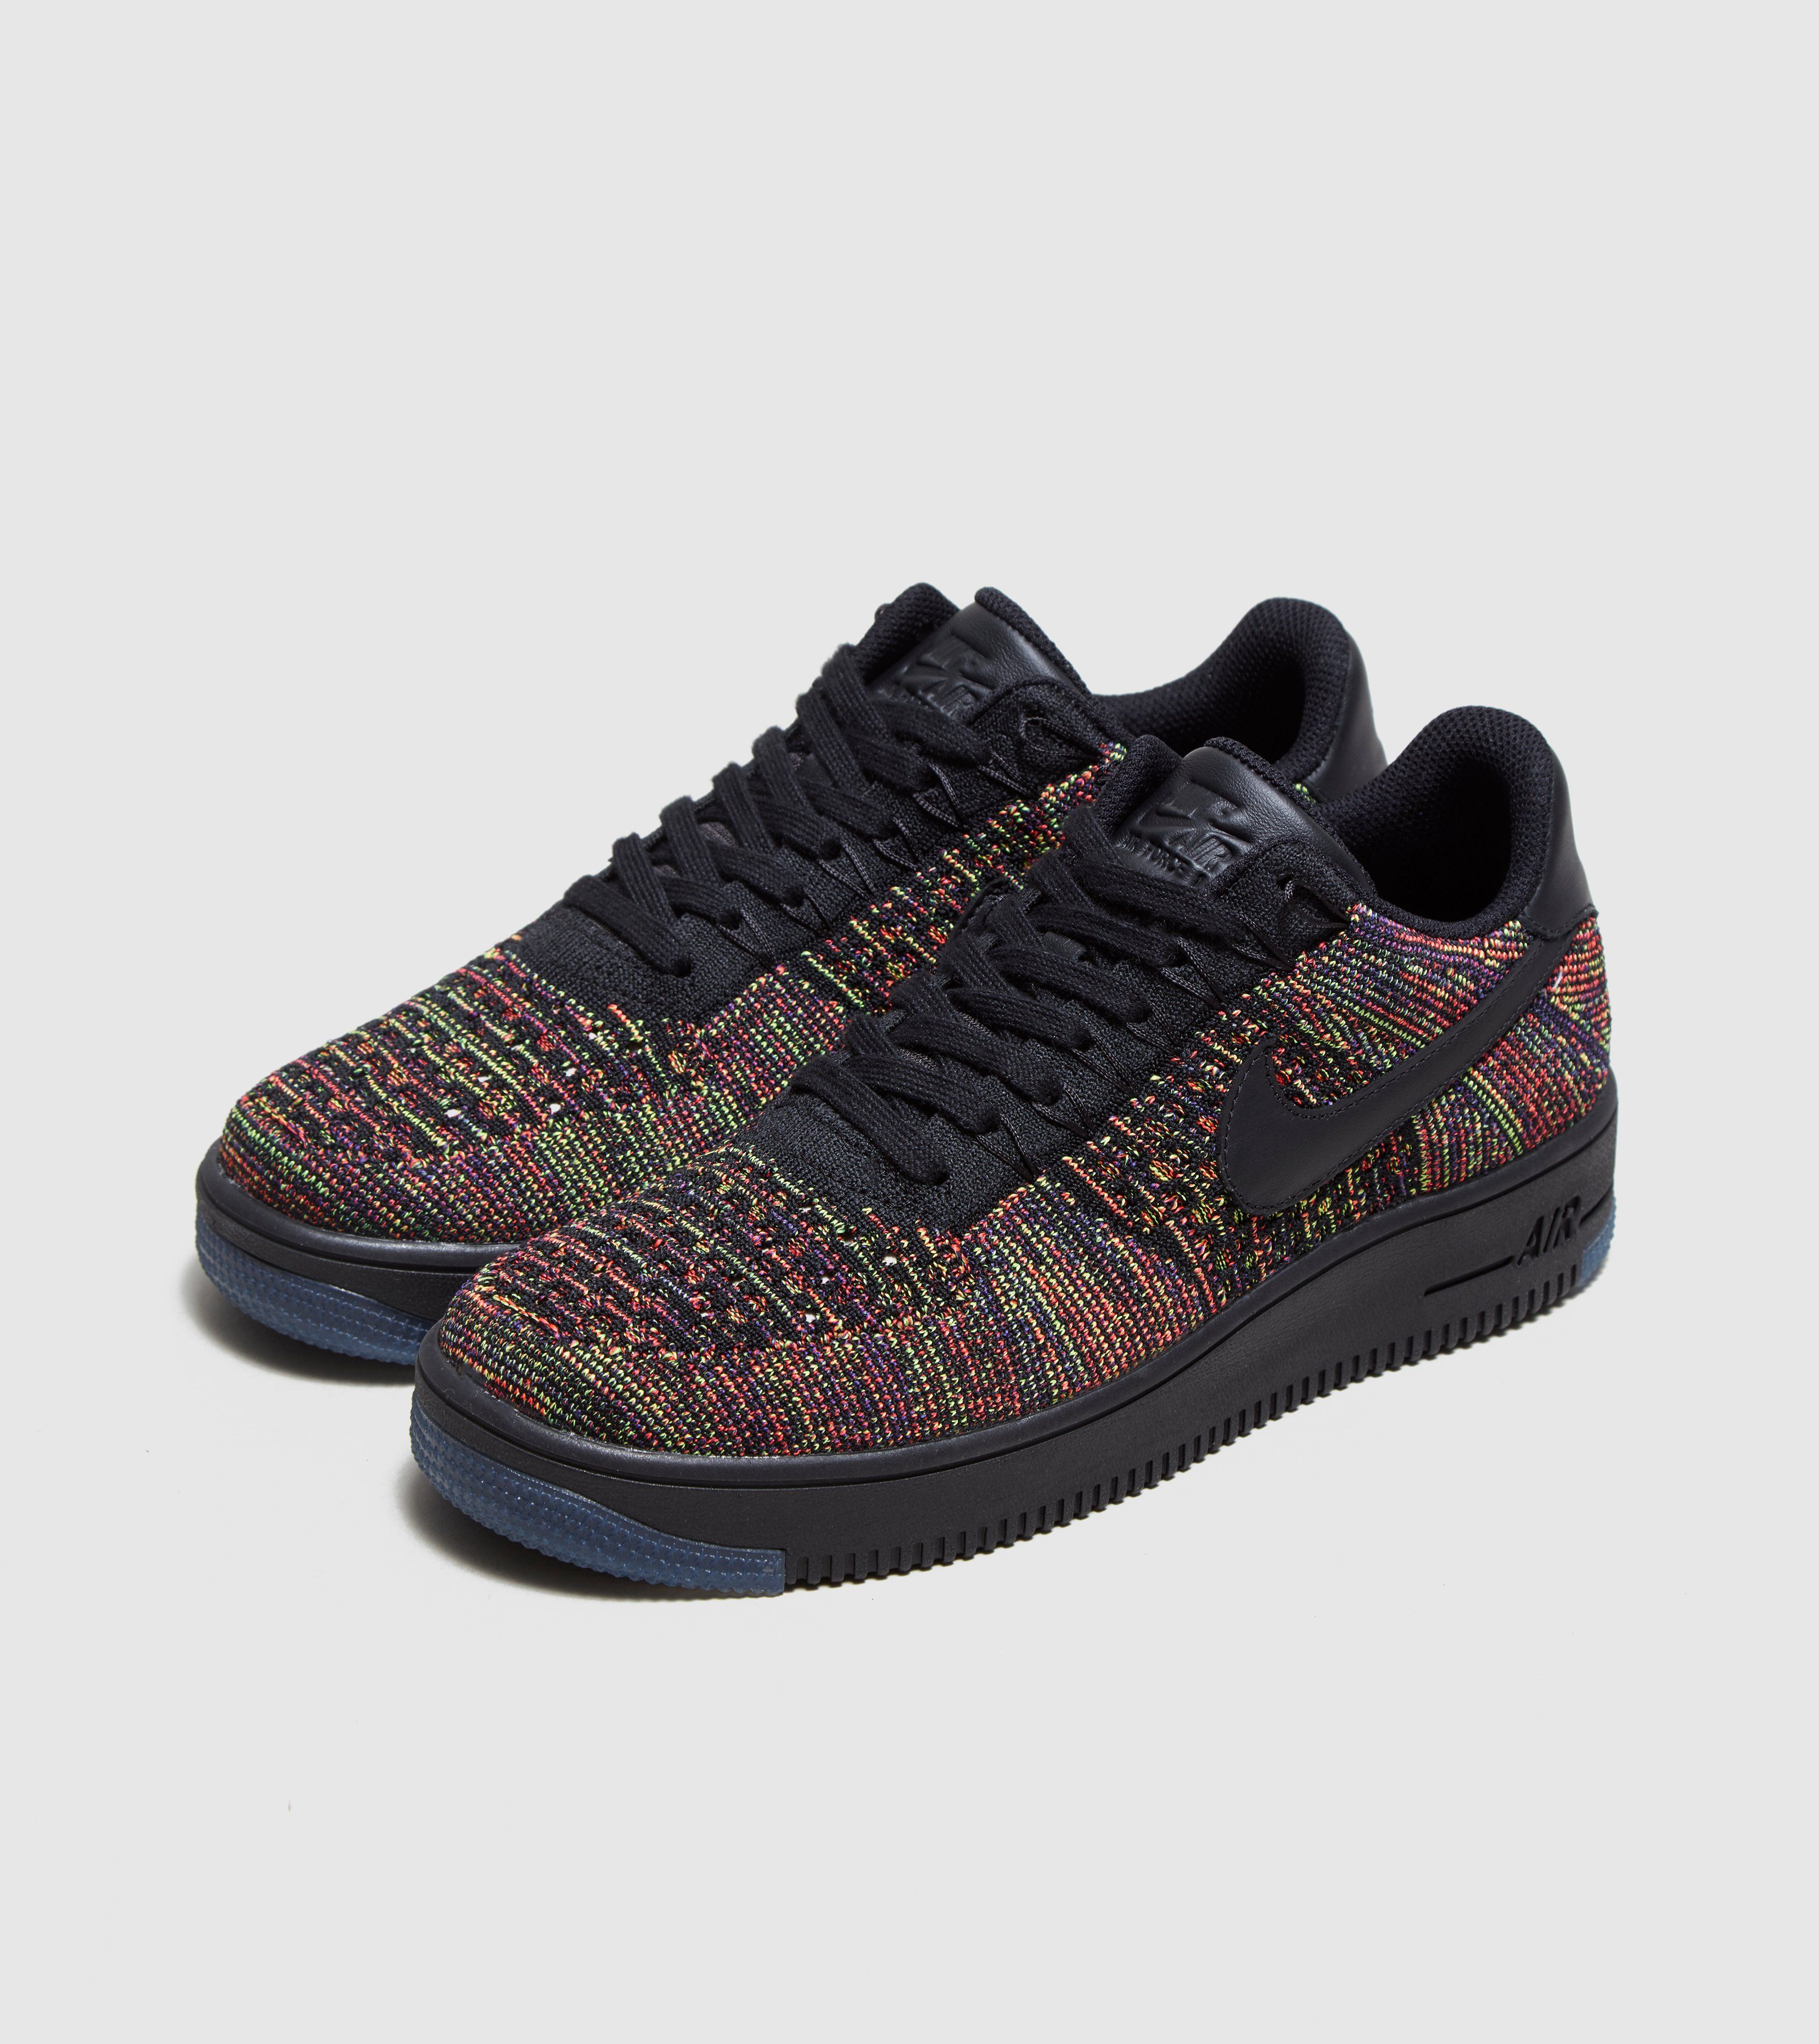 new product f6012 b1449 Nike Air Force 1 Flyknit Low   Size